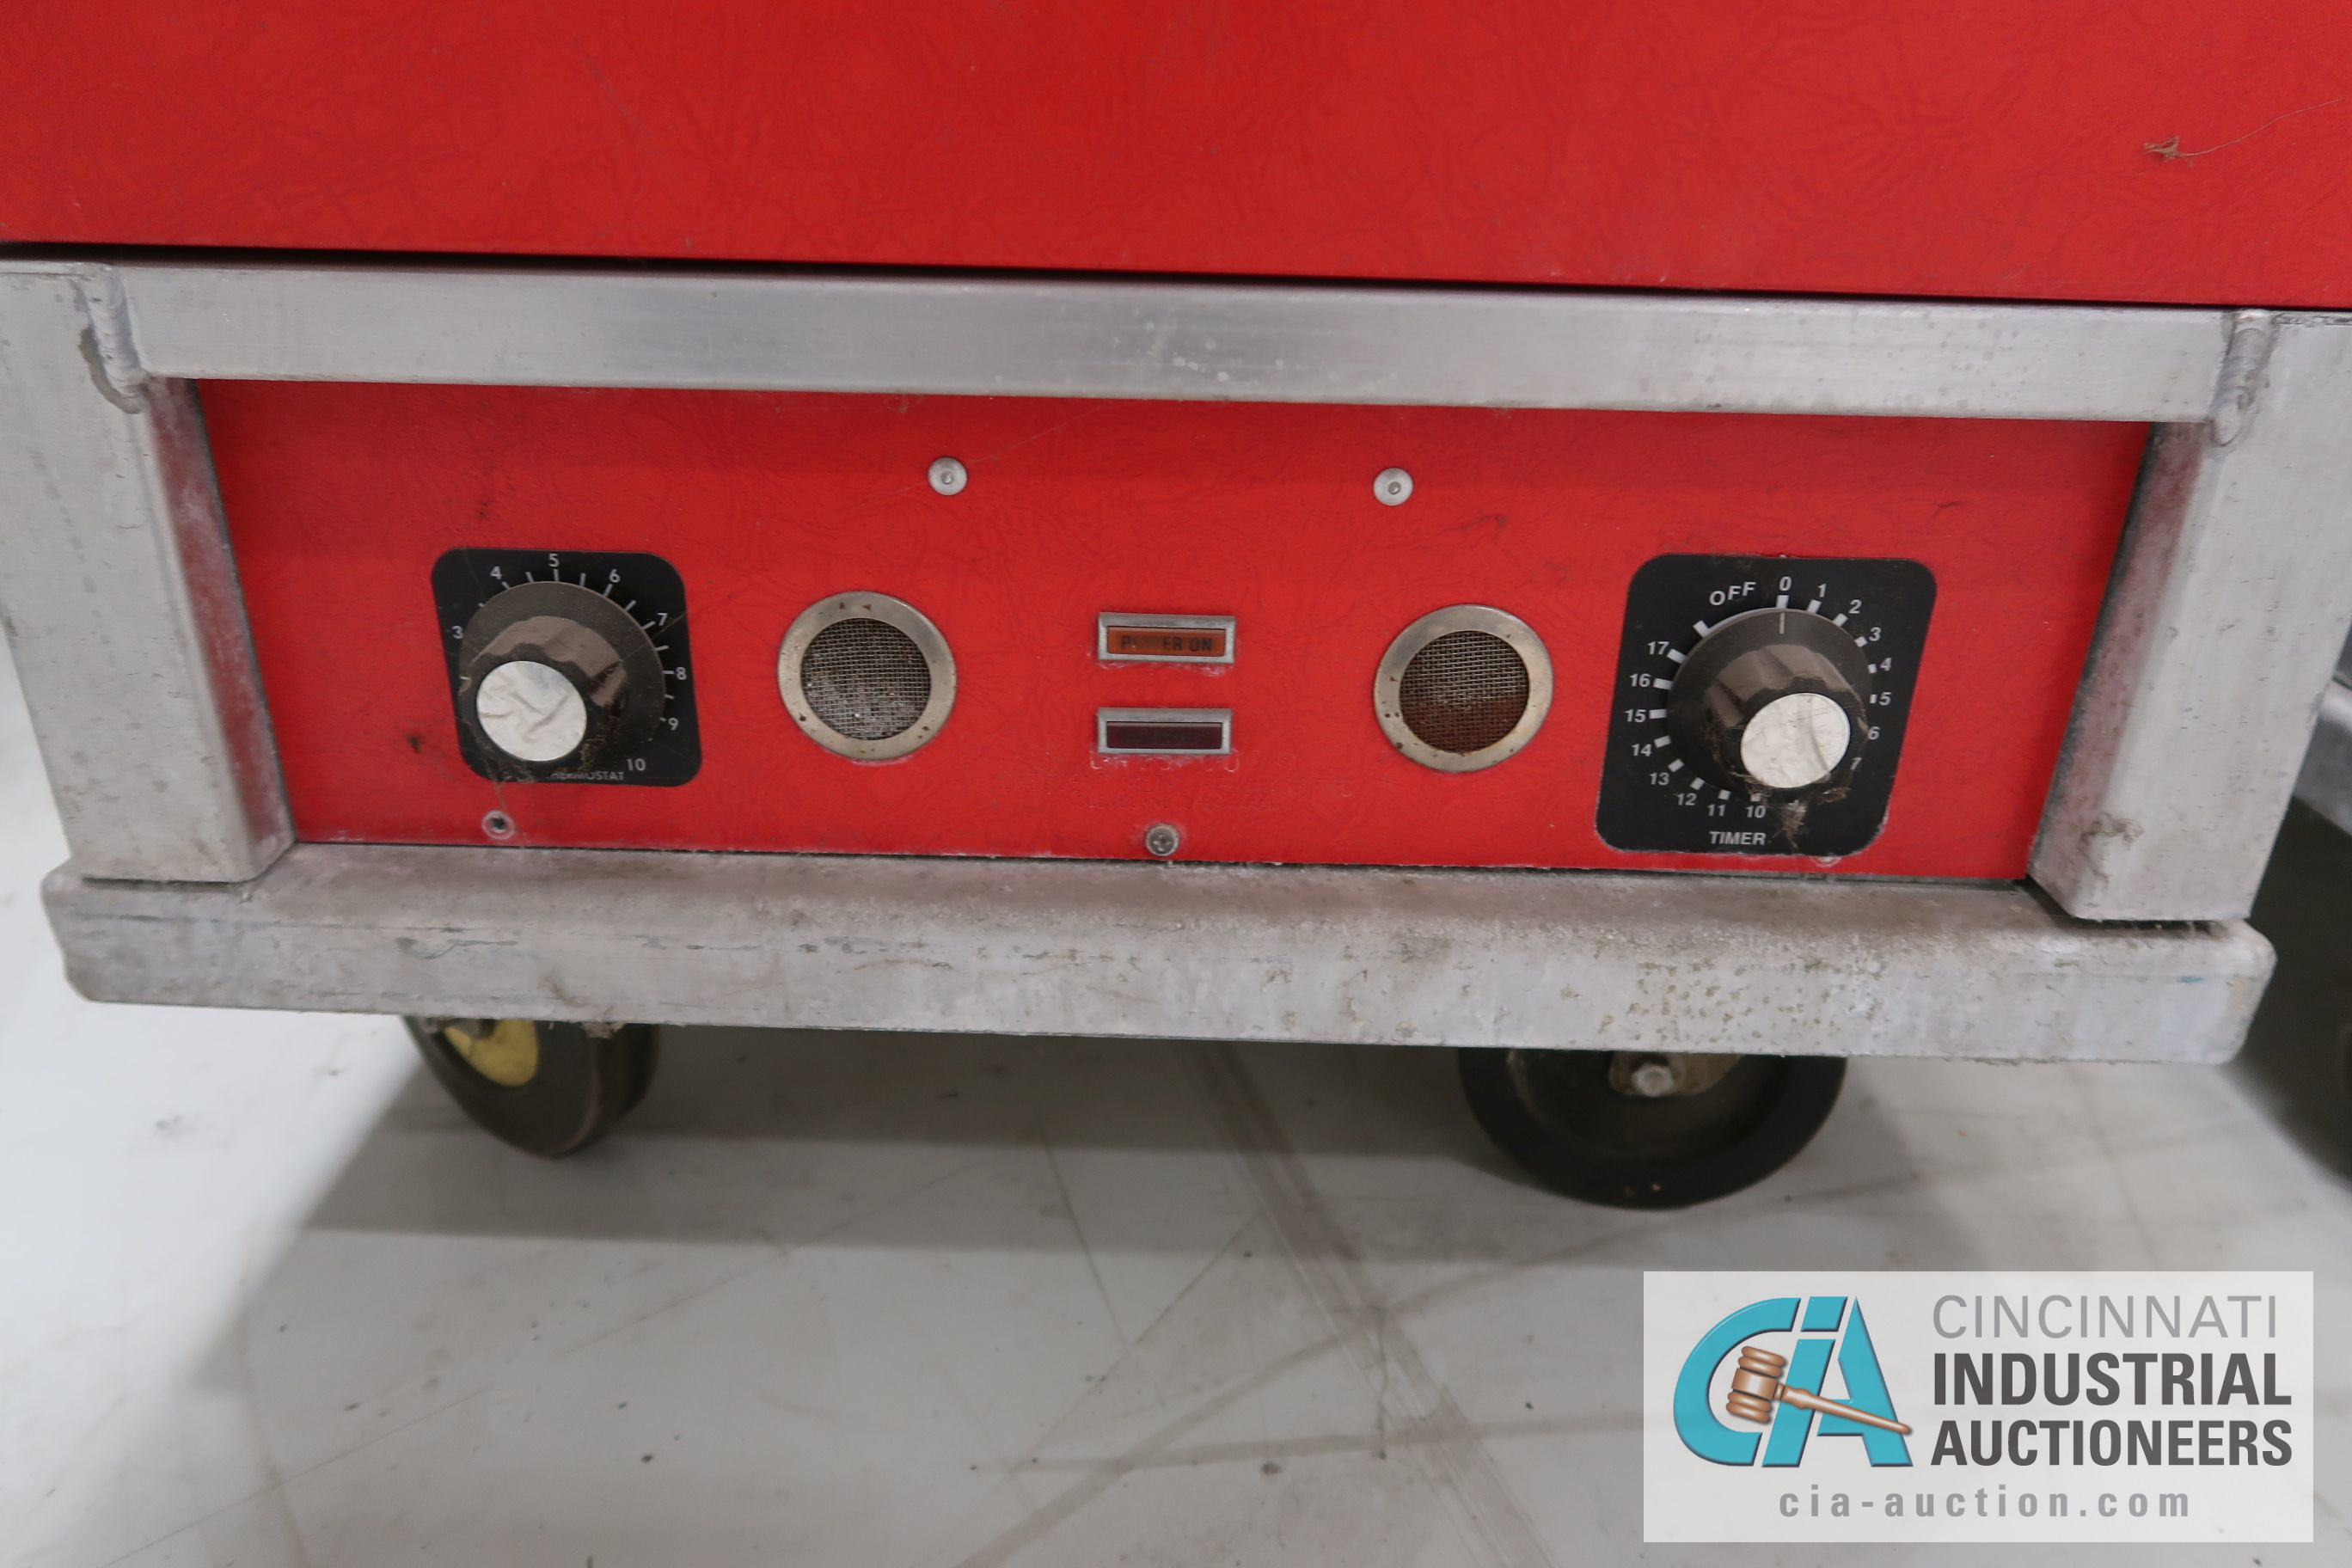 CRES-COR CROWN-X MODEL H-138-1834 TWO-DOOR ELECTRIC HOT CABINETS - Image 2 of 4